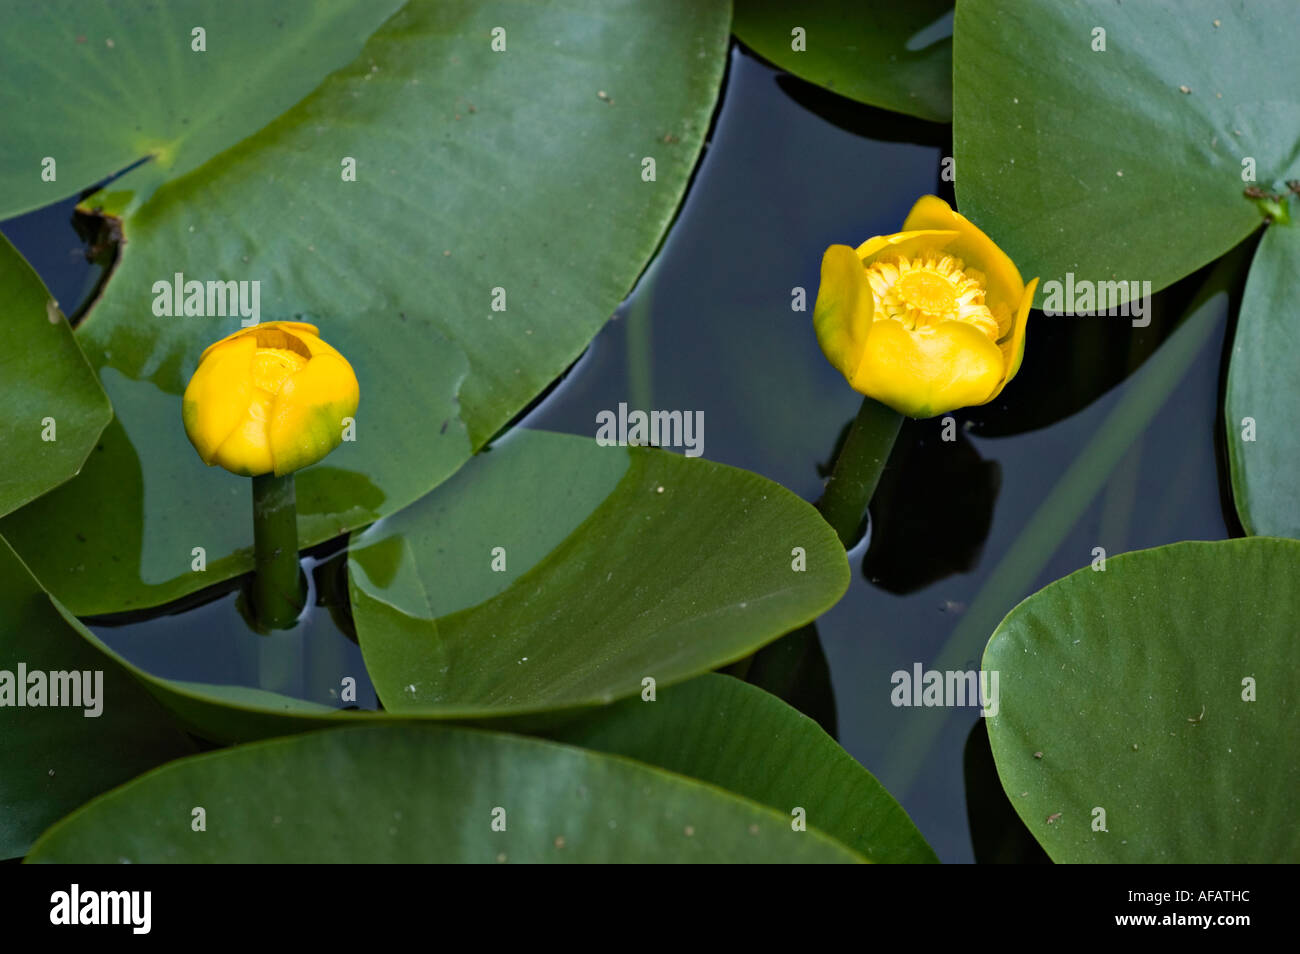 Cow lily stock photos cow lily stock images alamy yellow pond lily or cow lily or spatter dock or yellow cow lily nympheaceae nuphar lutea izmirmasajfo